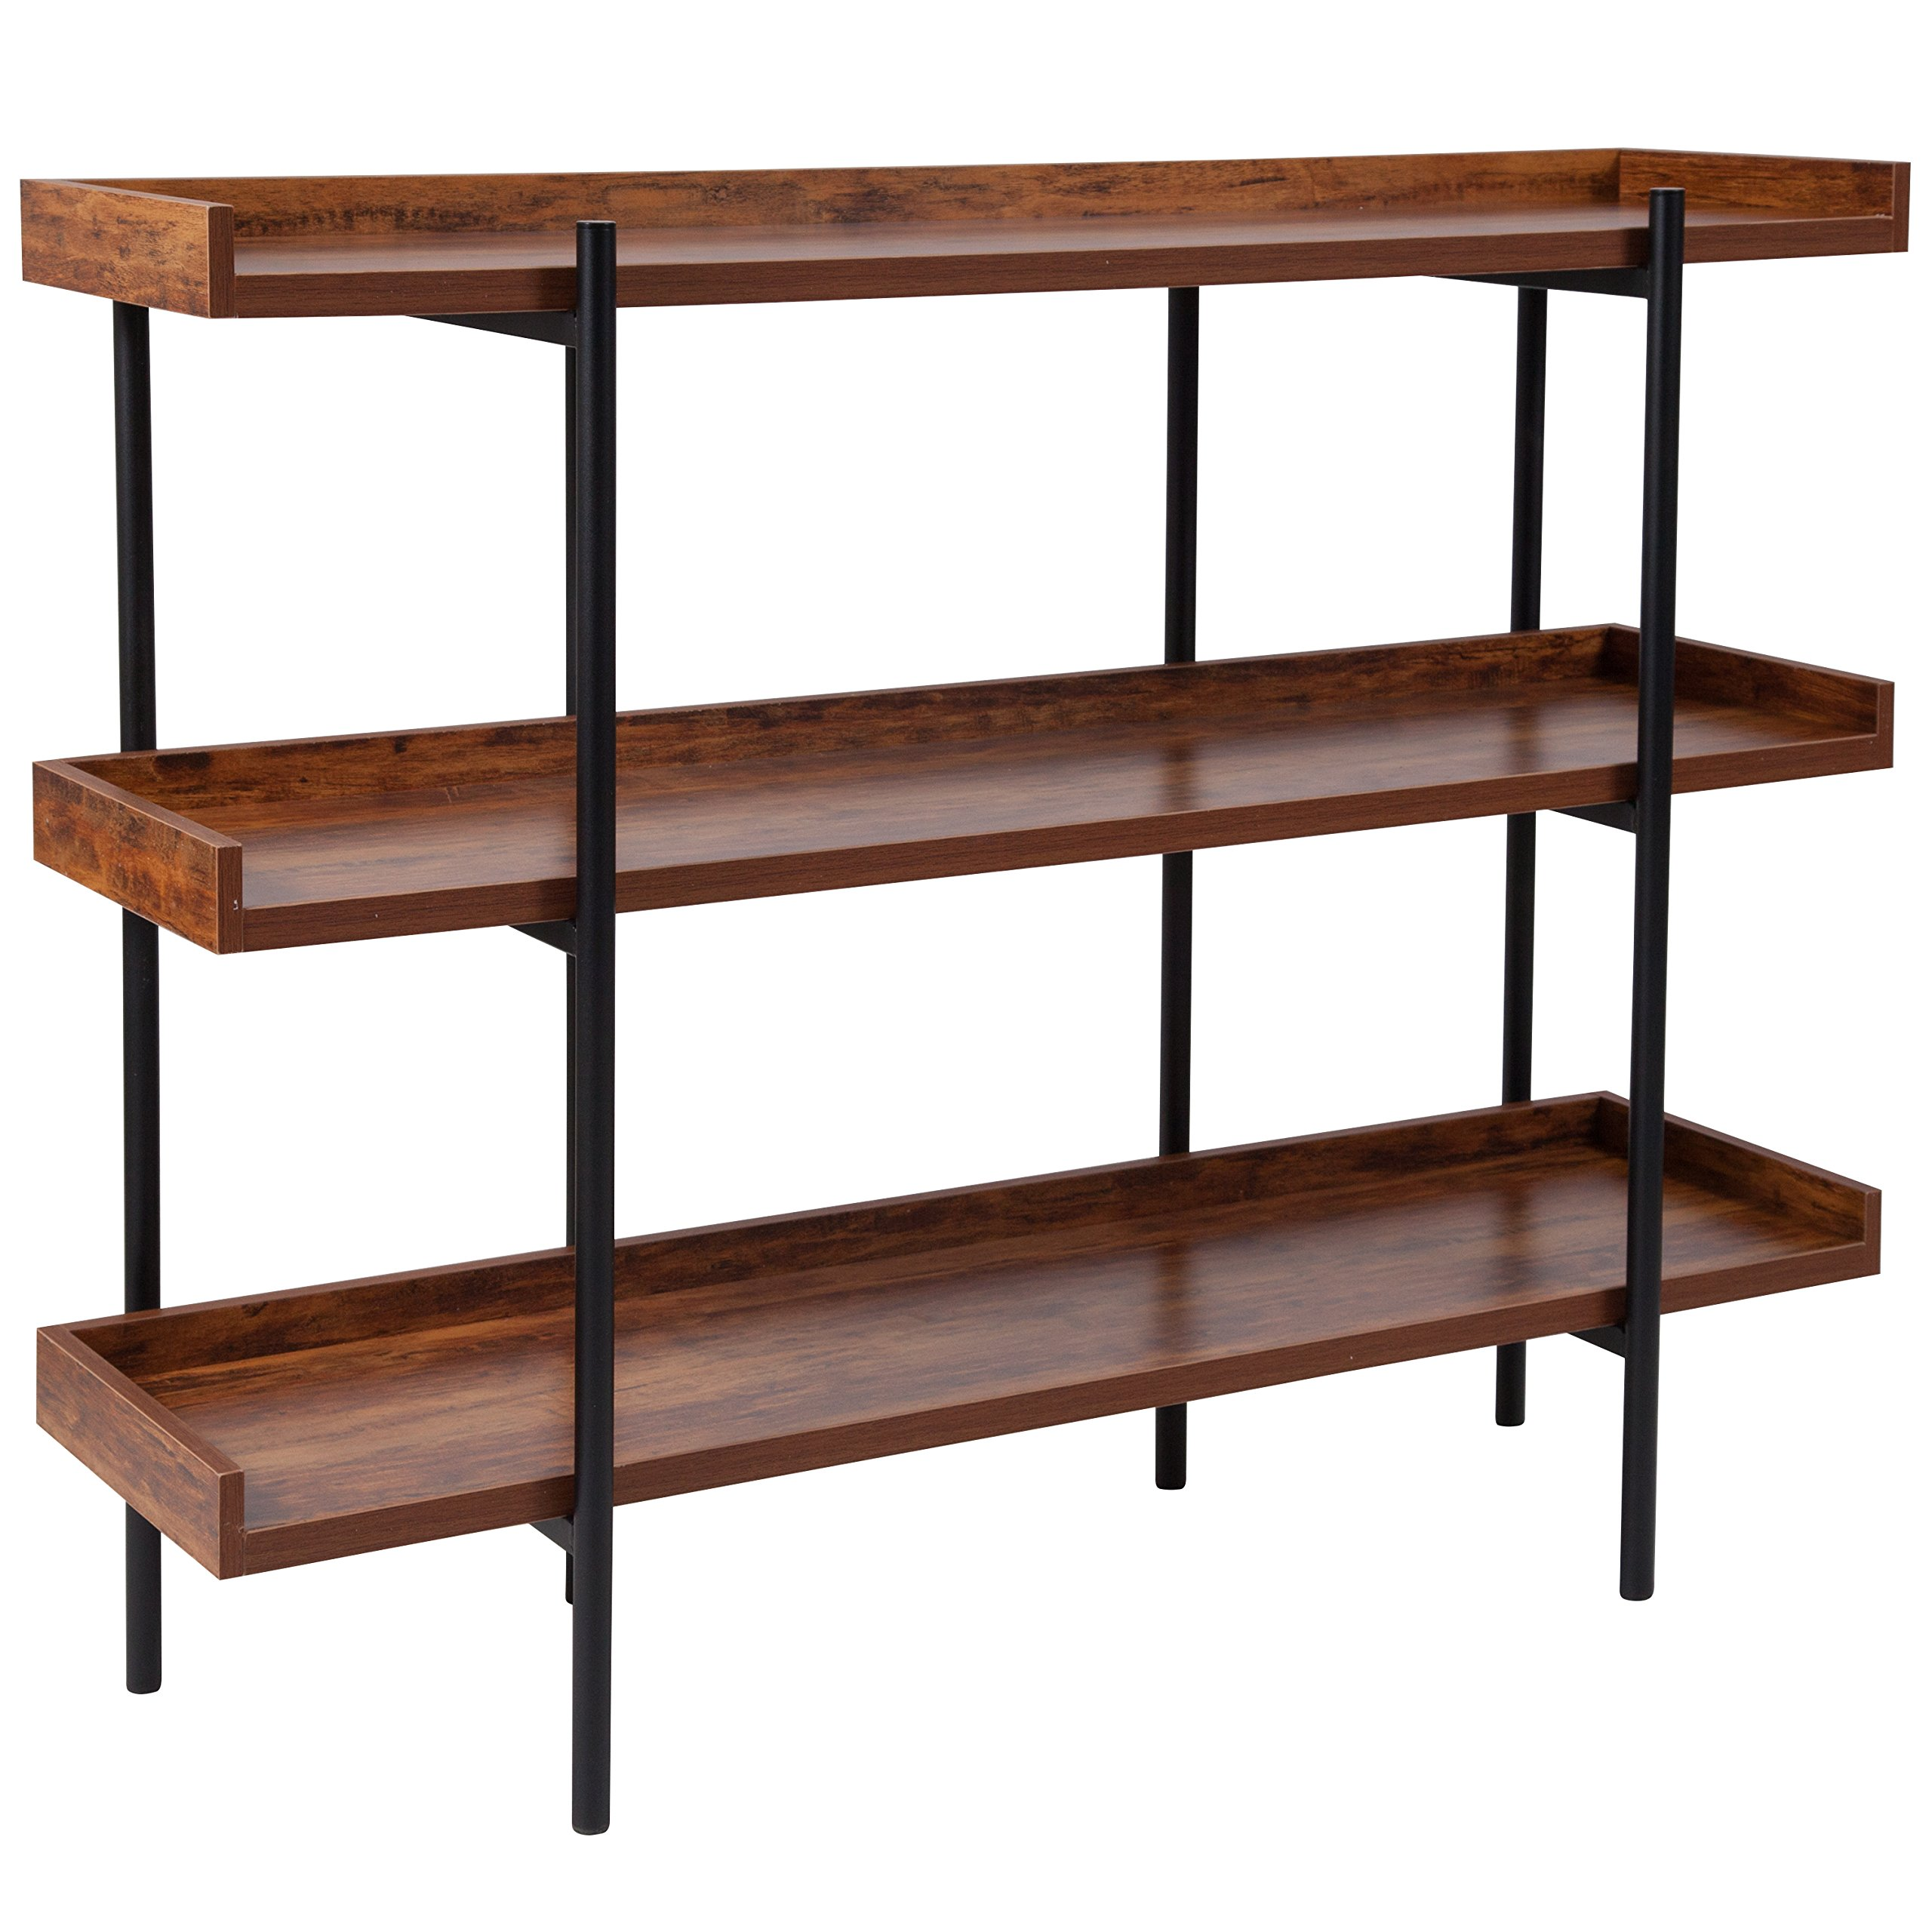 Flash Furniture Mayfair 3 Shelf 35''H Storage Display Unit Bookcase with Black Metal Frame in Rustic Wood Grain Finish by Flash Furniture